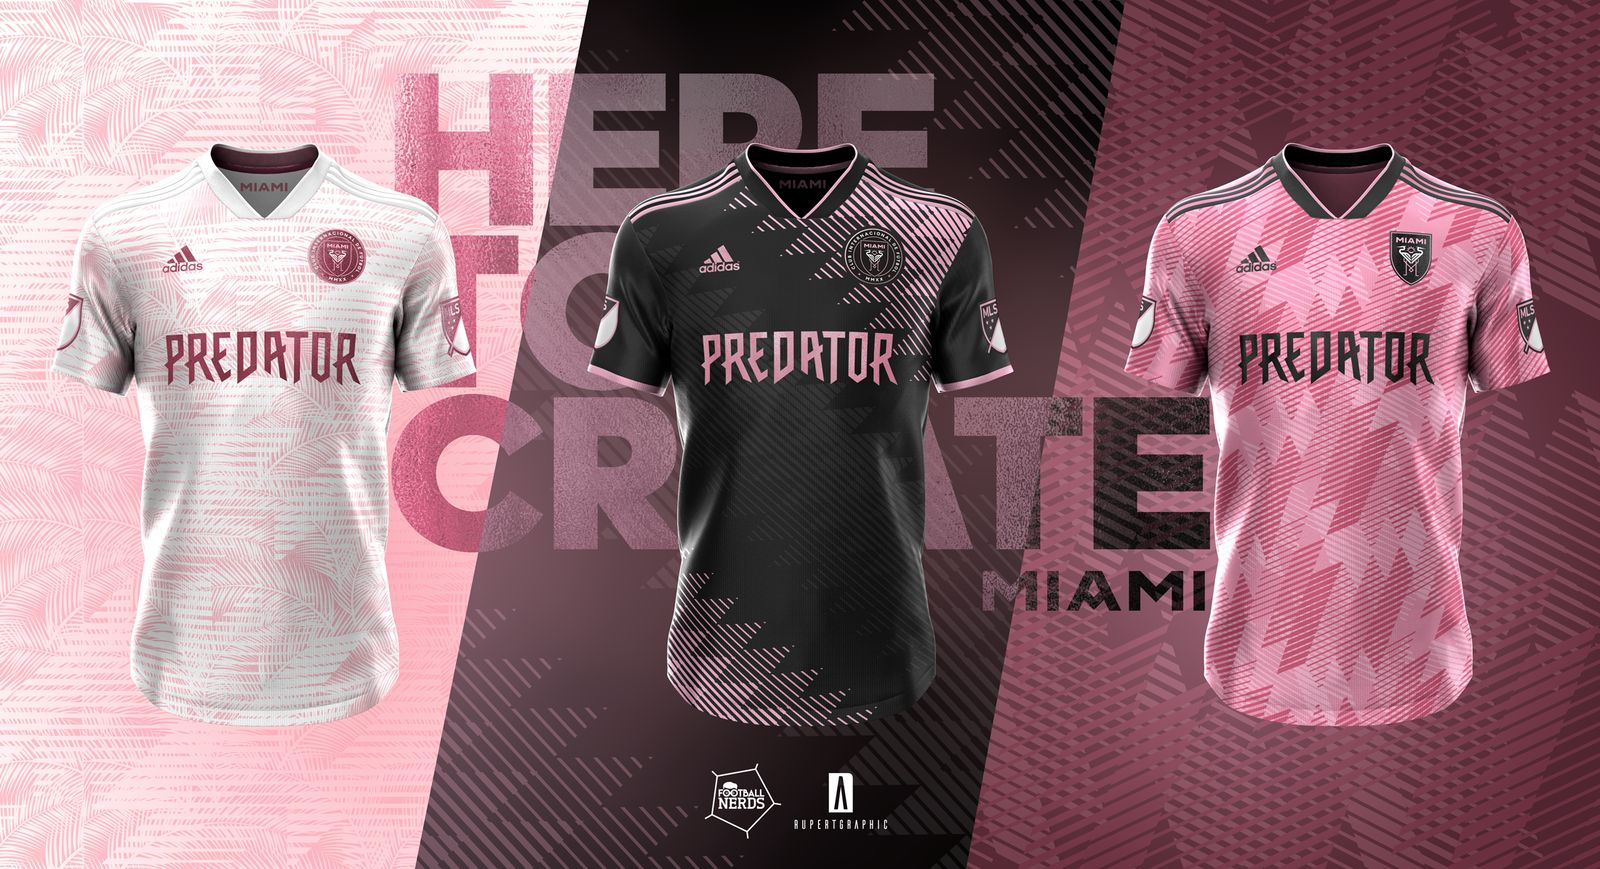 lowest price 99d1e 57df5 3 Stunning Adidas Inter Miami Concept Kits by Rupertgraphic ...